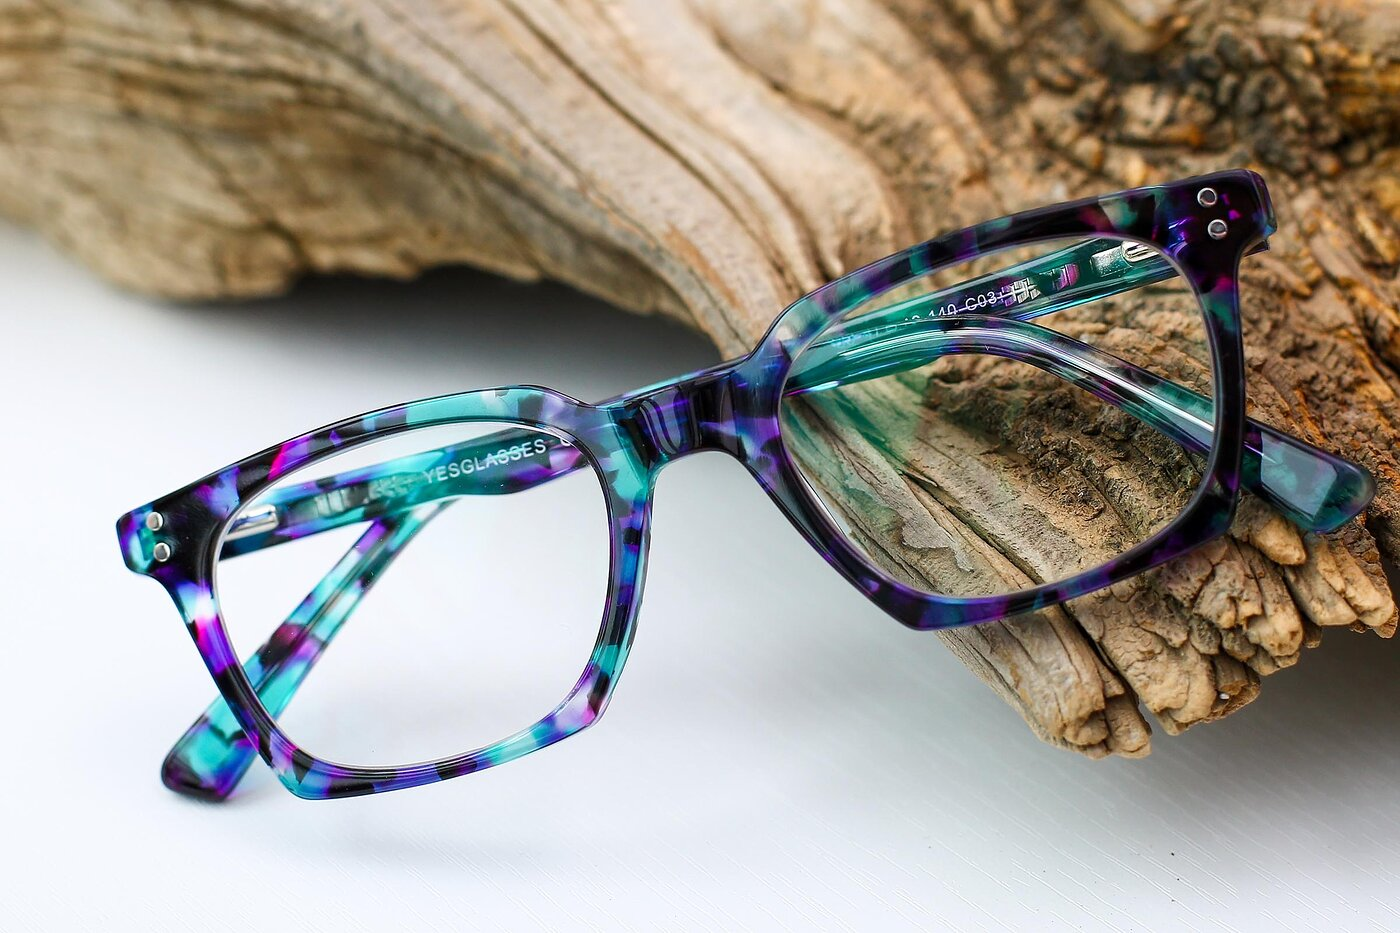 Floral Blue Geek-Chic Square Geometric Eyeglasses